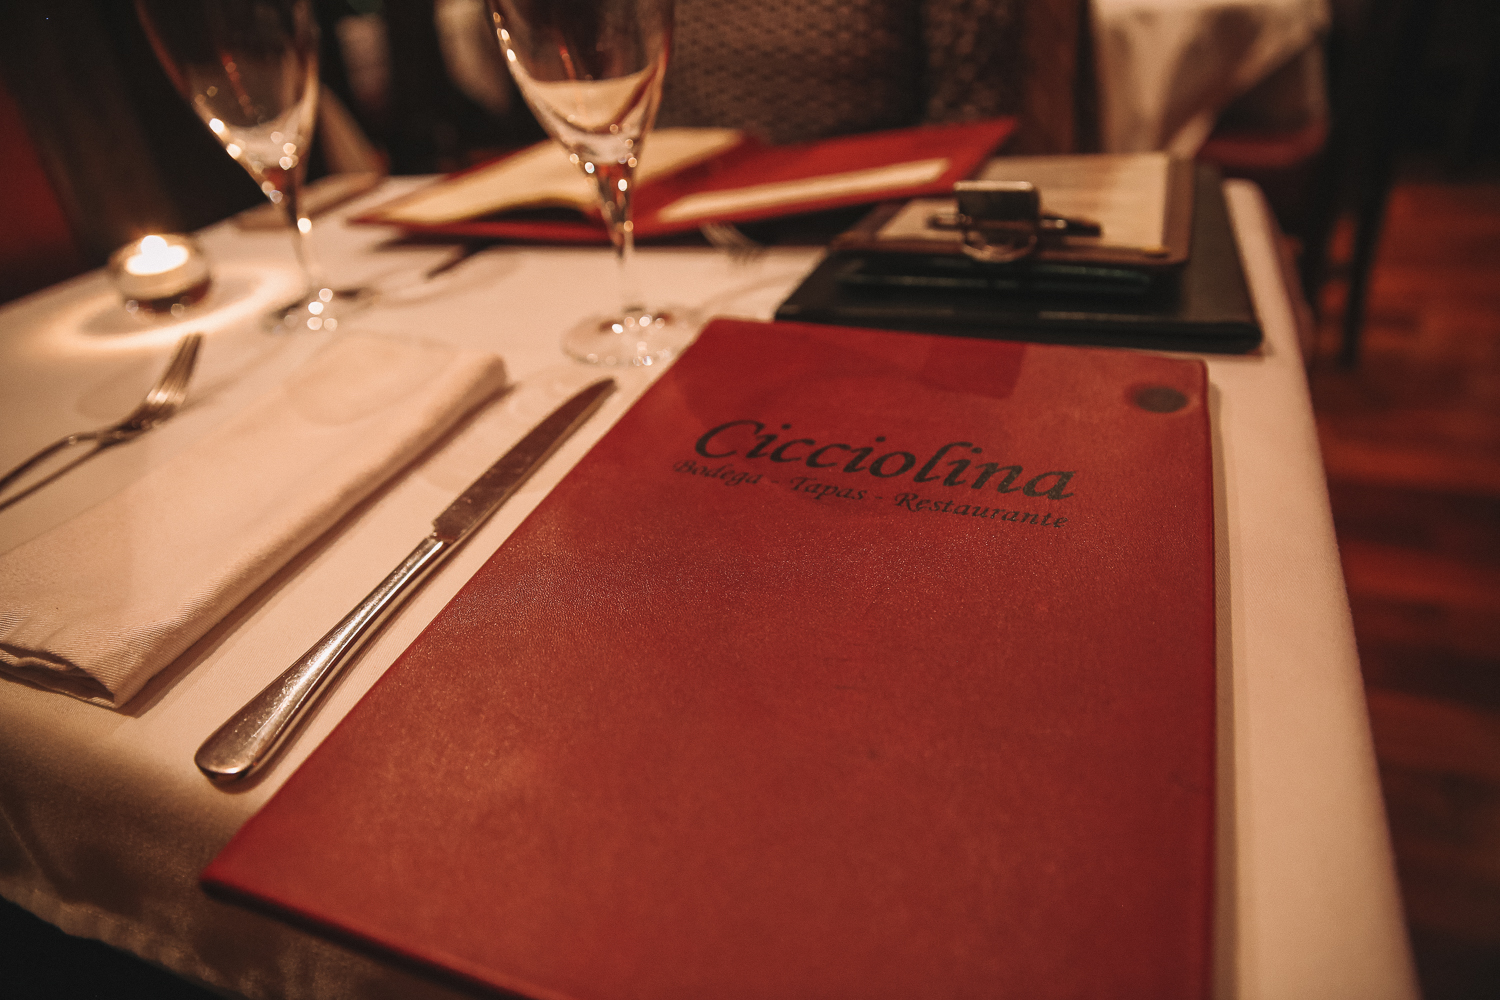 Cicciolina  is the best restaurant (of the restaurants we visited) in Cusco. You won't want to miss the food here!